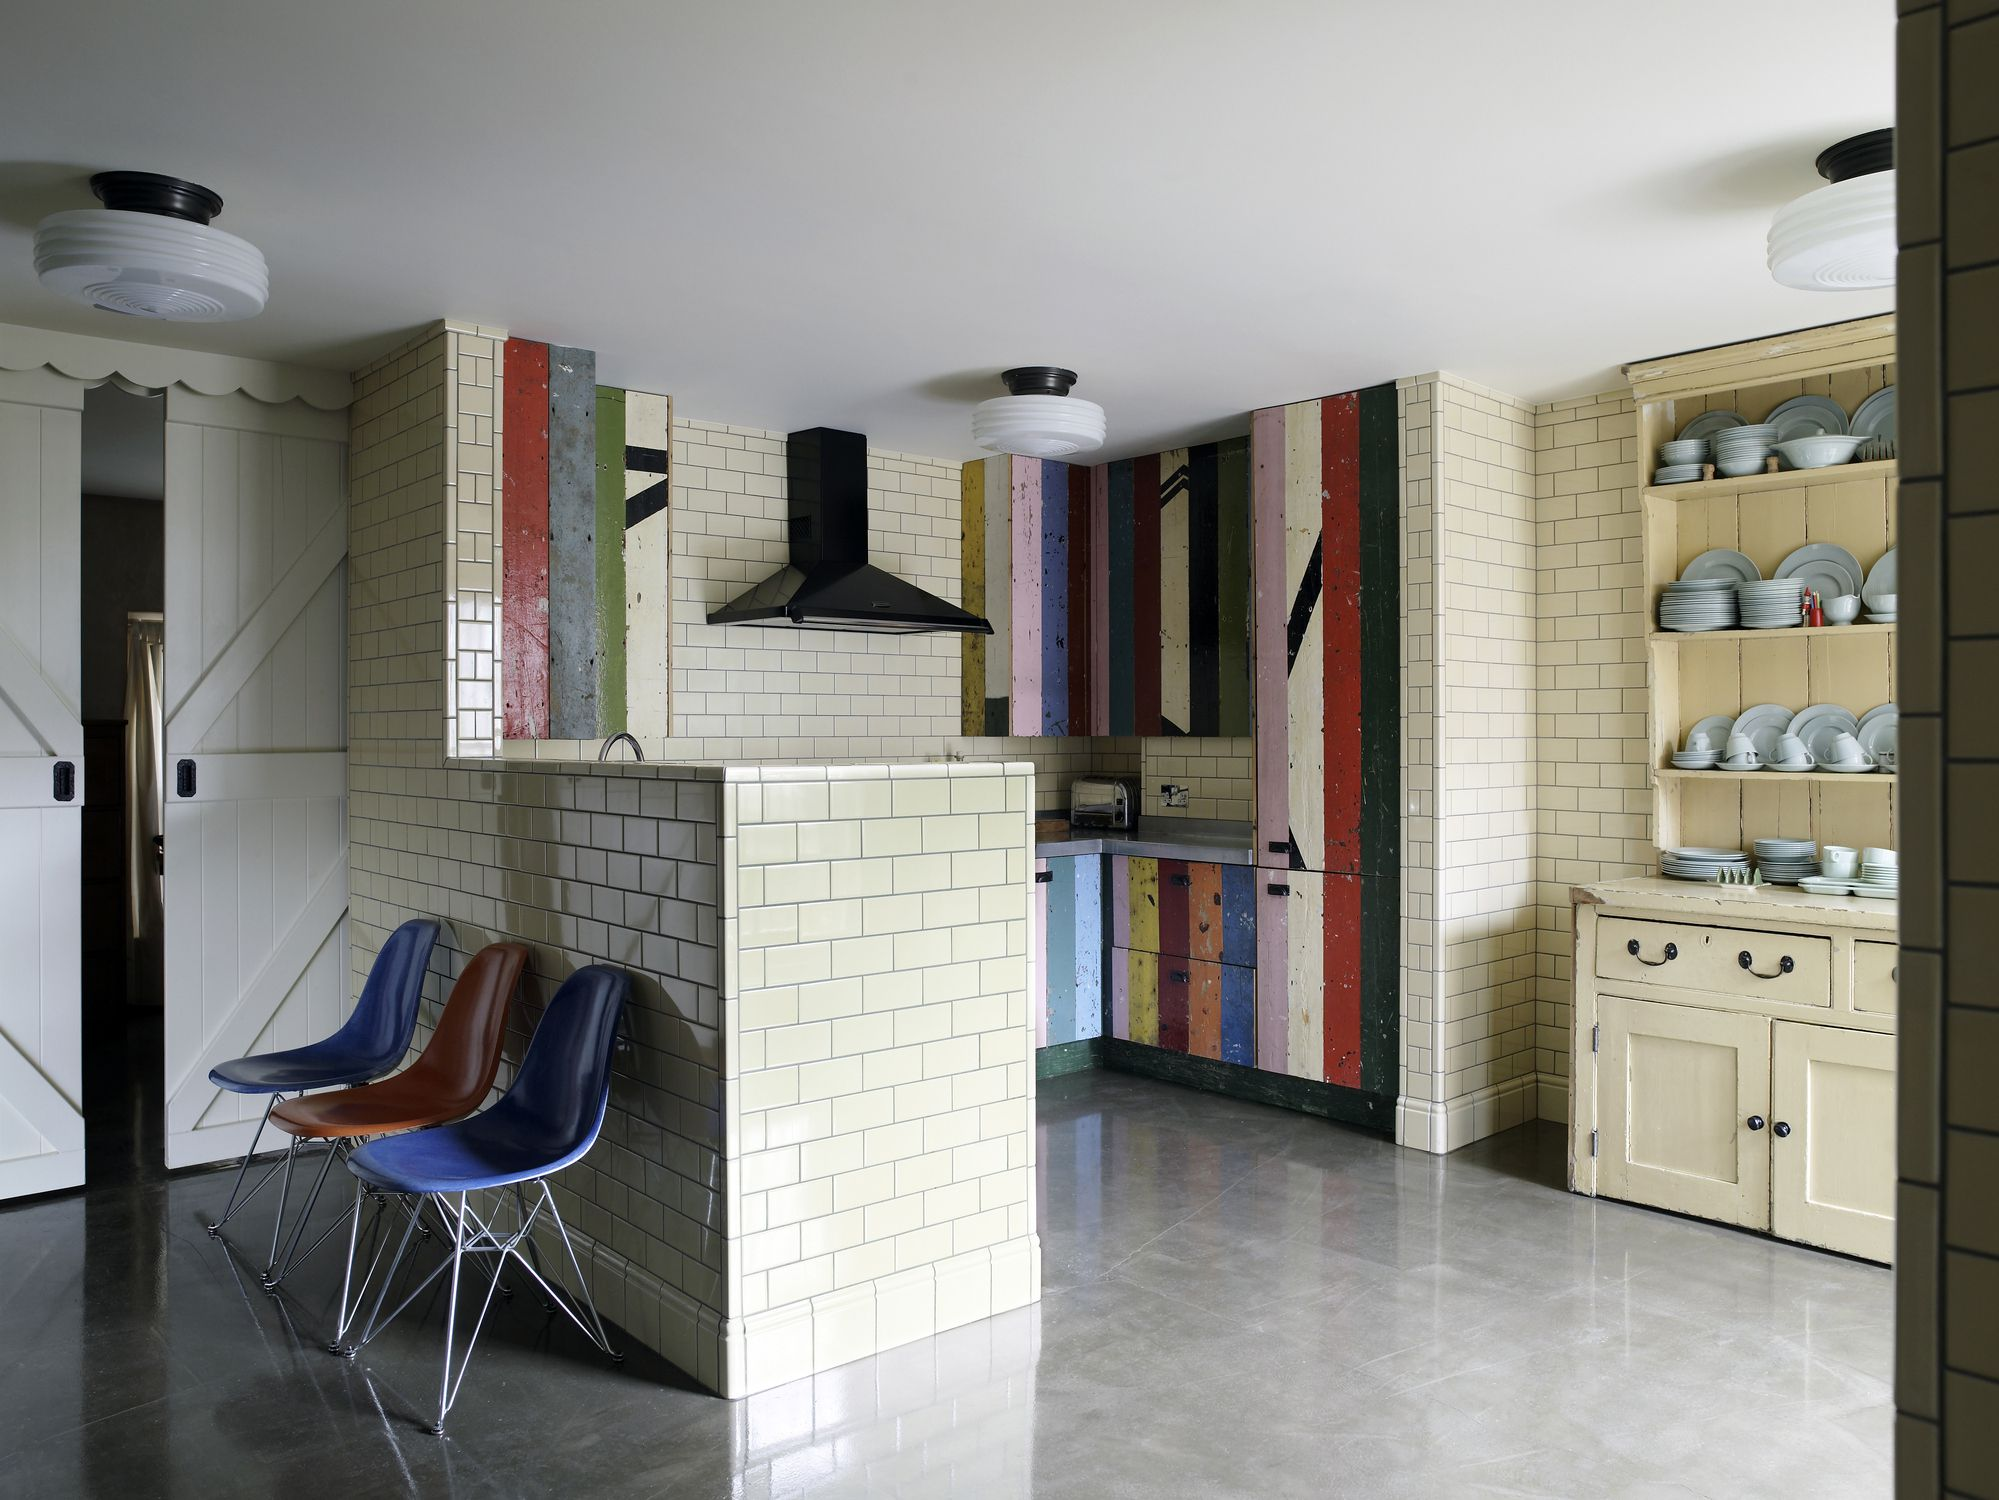 The 4 best choices for garage floor finishes a look at concrete flooring options color texture and design solutioingenieria Image collections